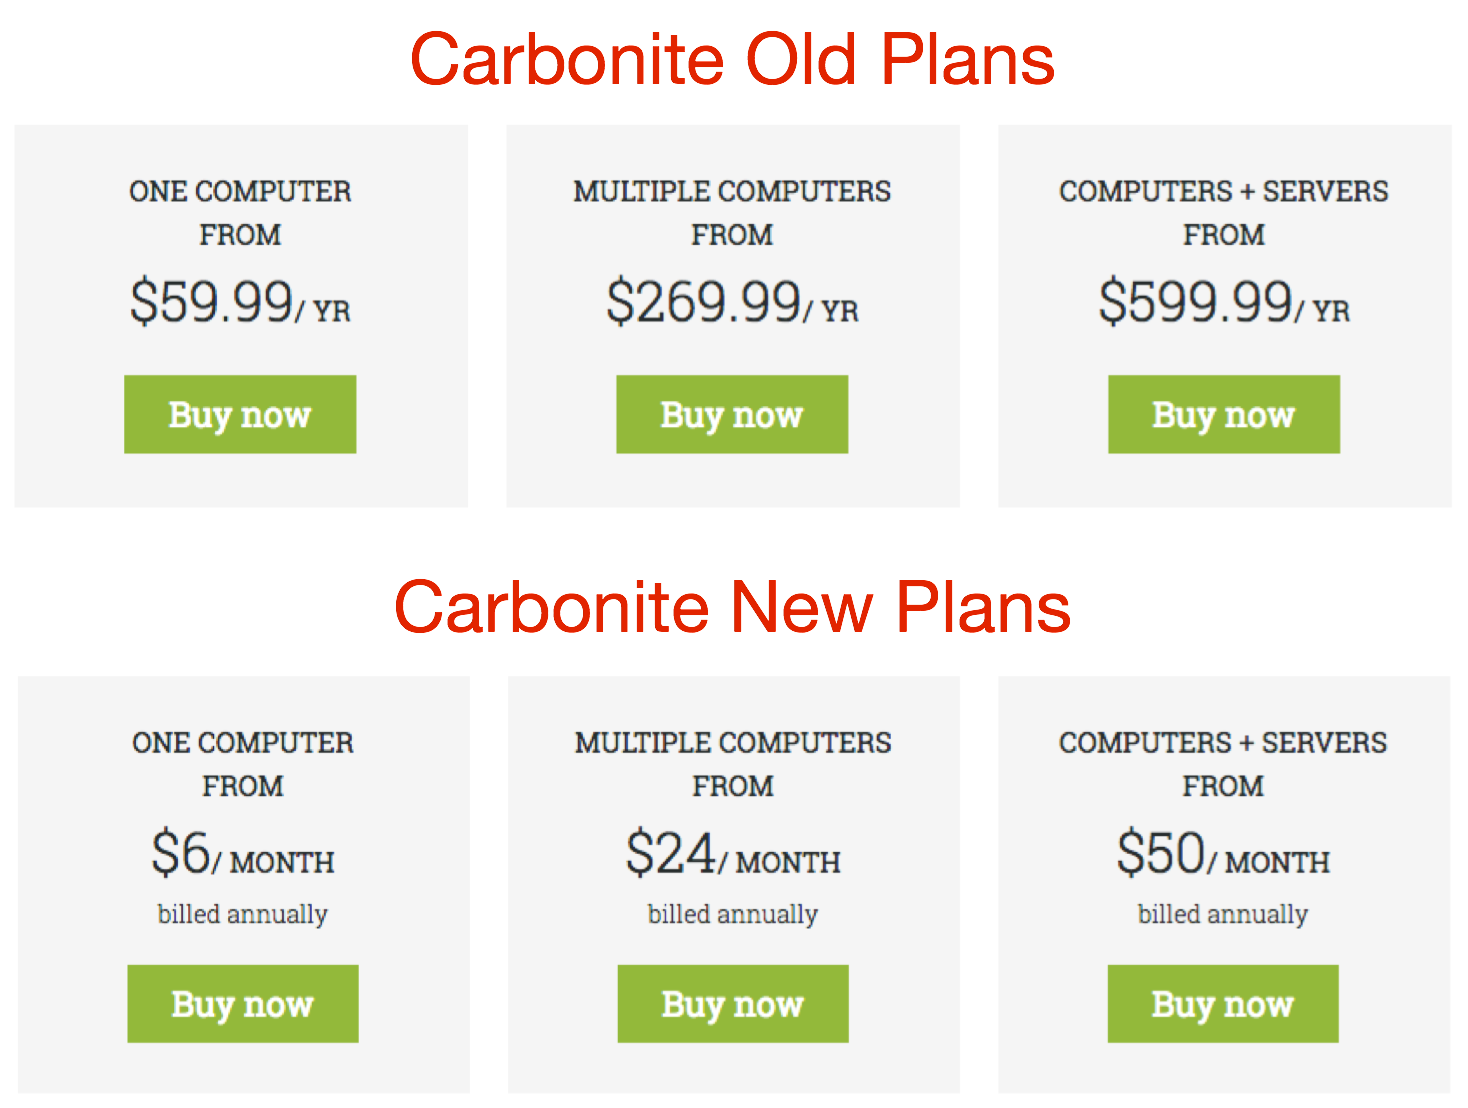 Carbonite raises online backup prices tidbits to the companys credit carbonite is keeping the crashplan discount prices the same so theyre now better than 50 percent for the first year altavistaventures Gallery